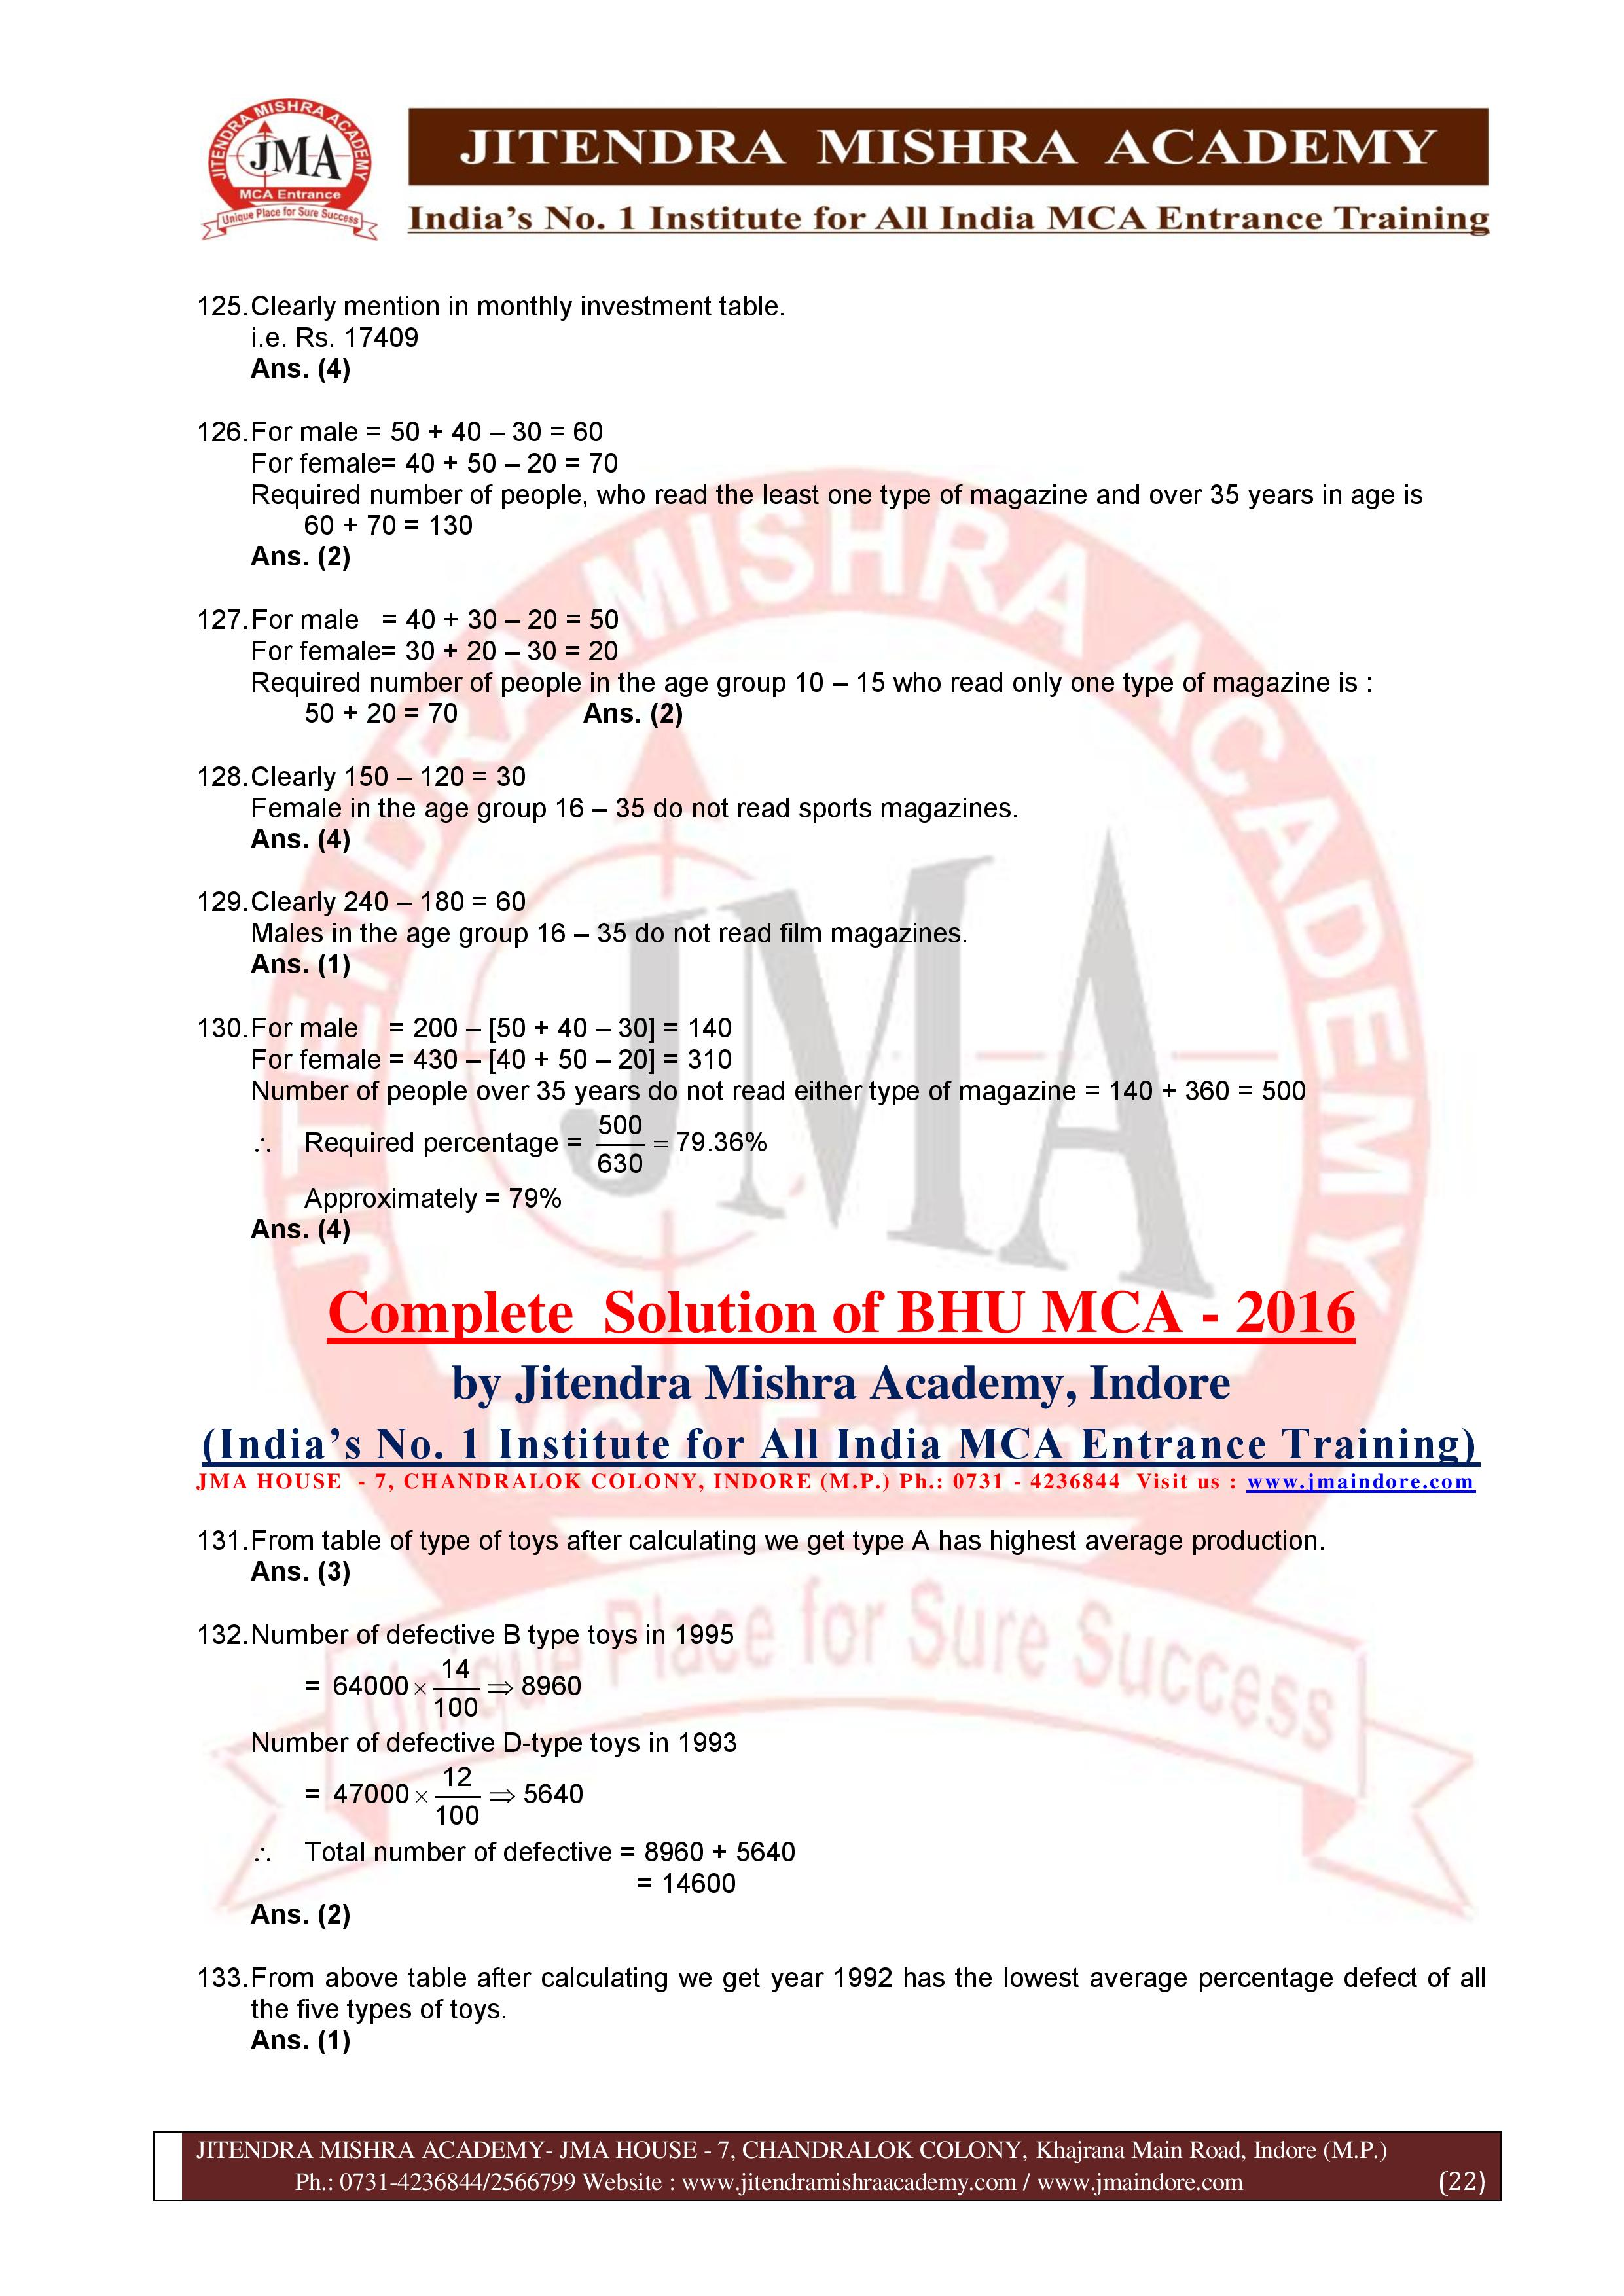 BHU 2016 SOLUTION (SET - 1)-page-022